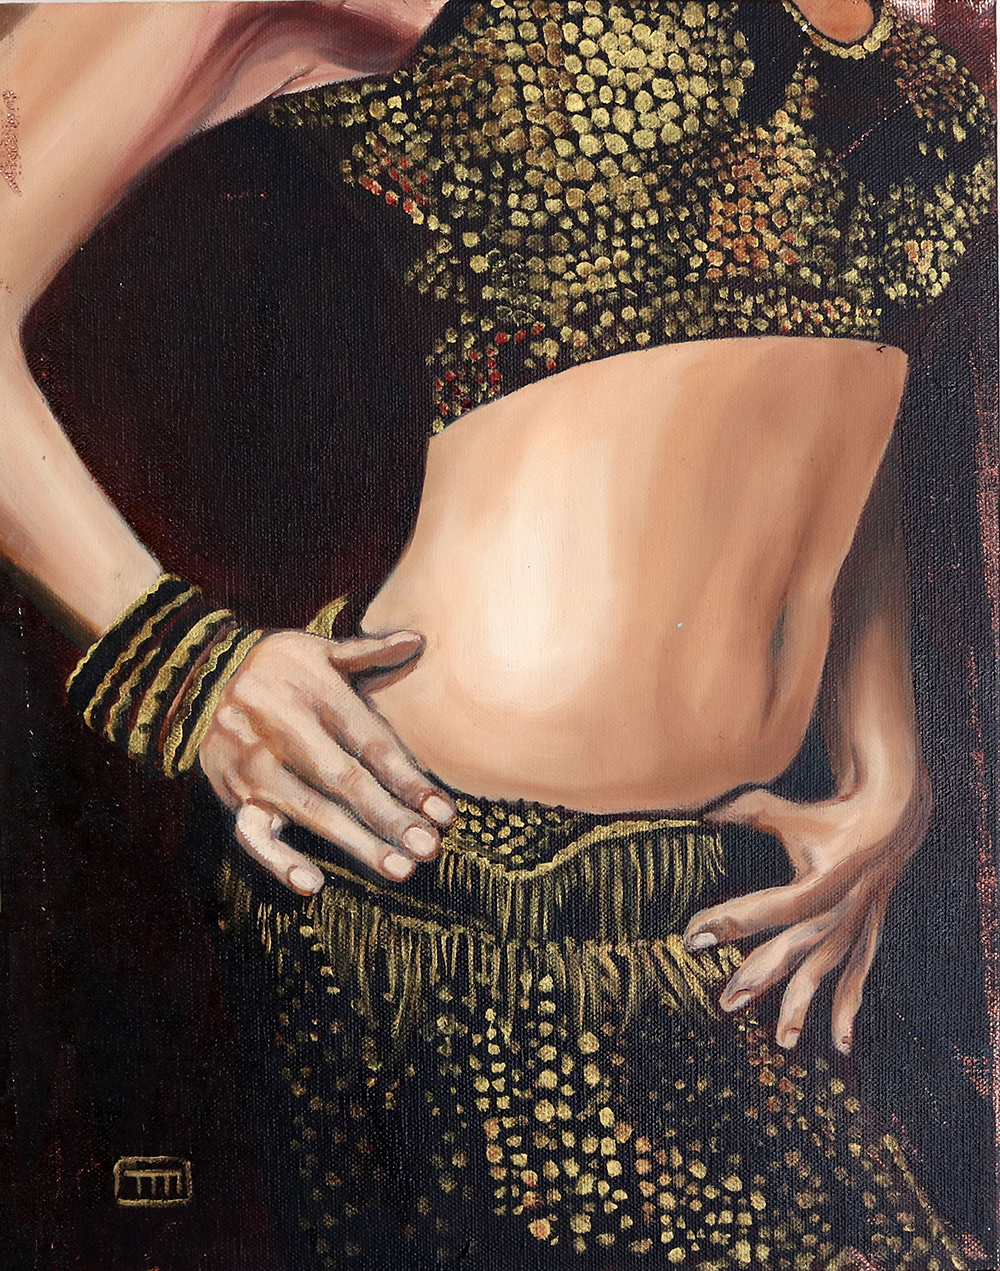 20496926-Machmali, Belly Dancer, oil on canvas, 11x14, 2006, 400.jpg